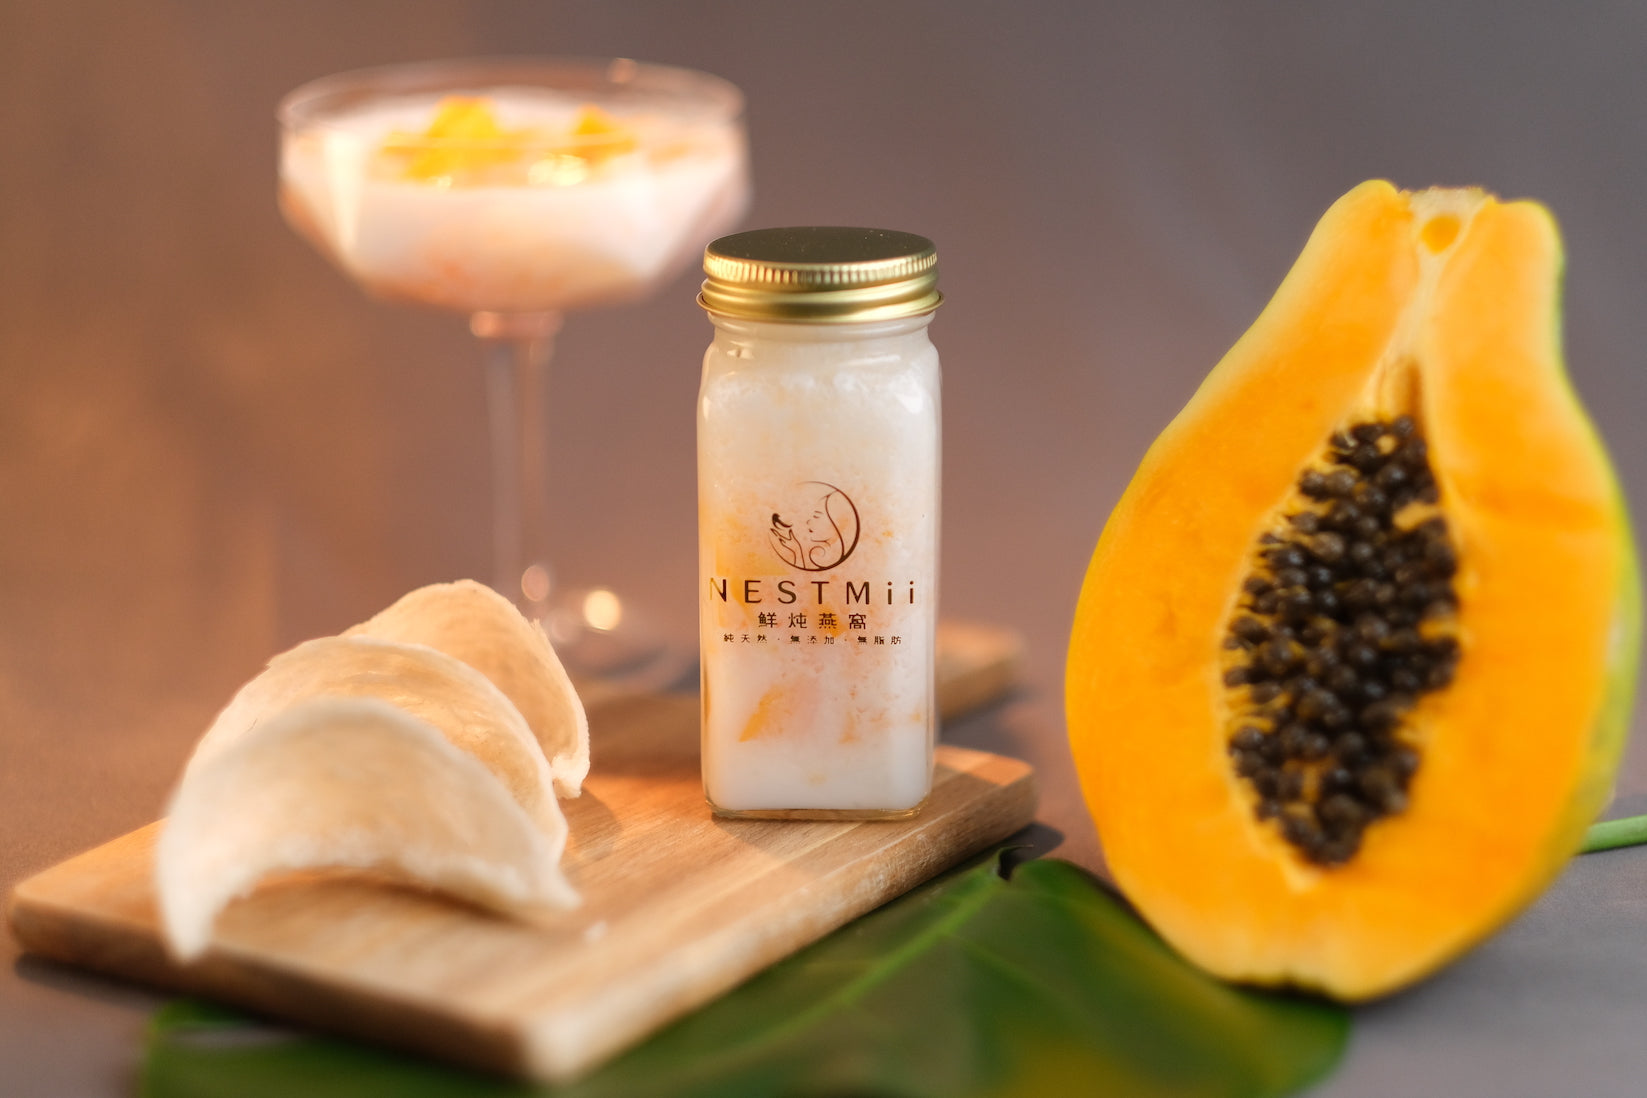 Papaya and Coconut Milk Birdnest Parfait <br>椰奶木瓜鲜炖燕窝</br>